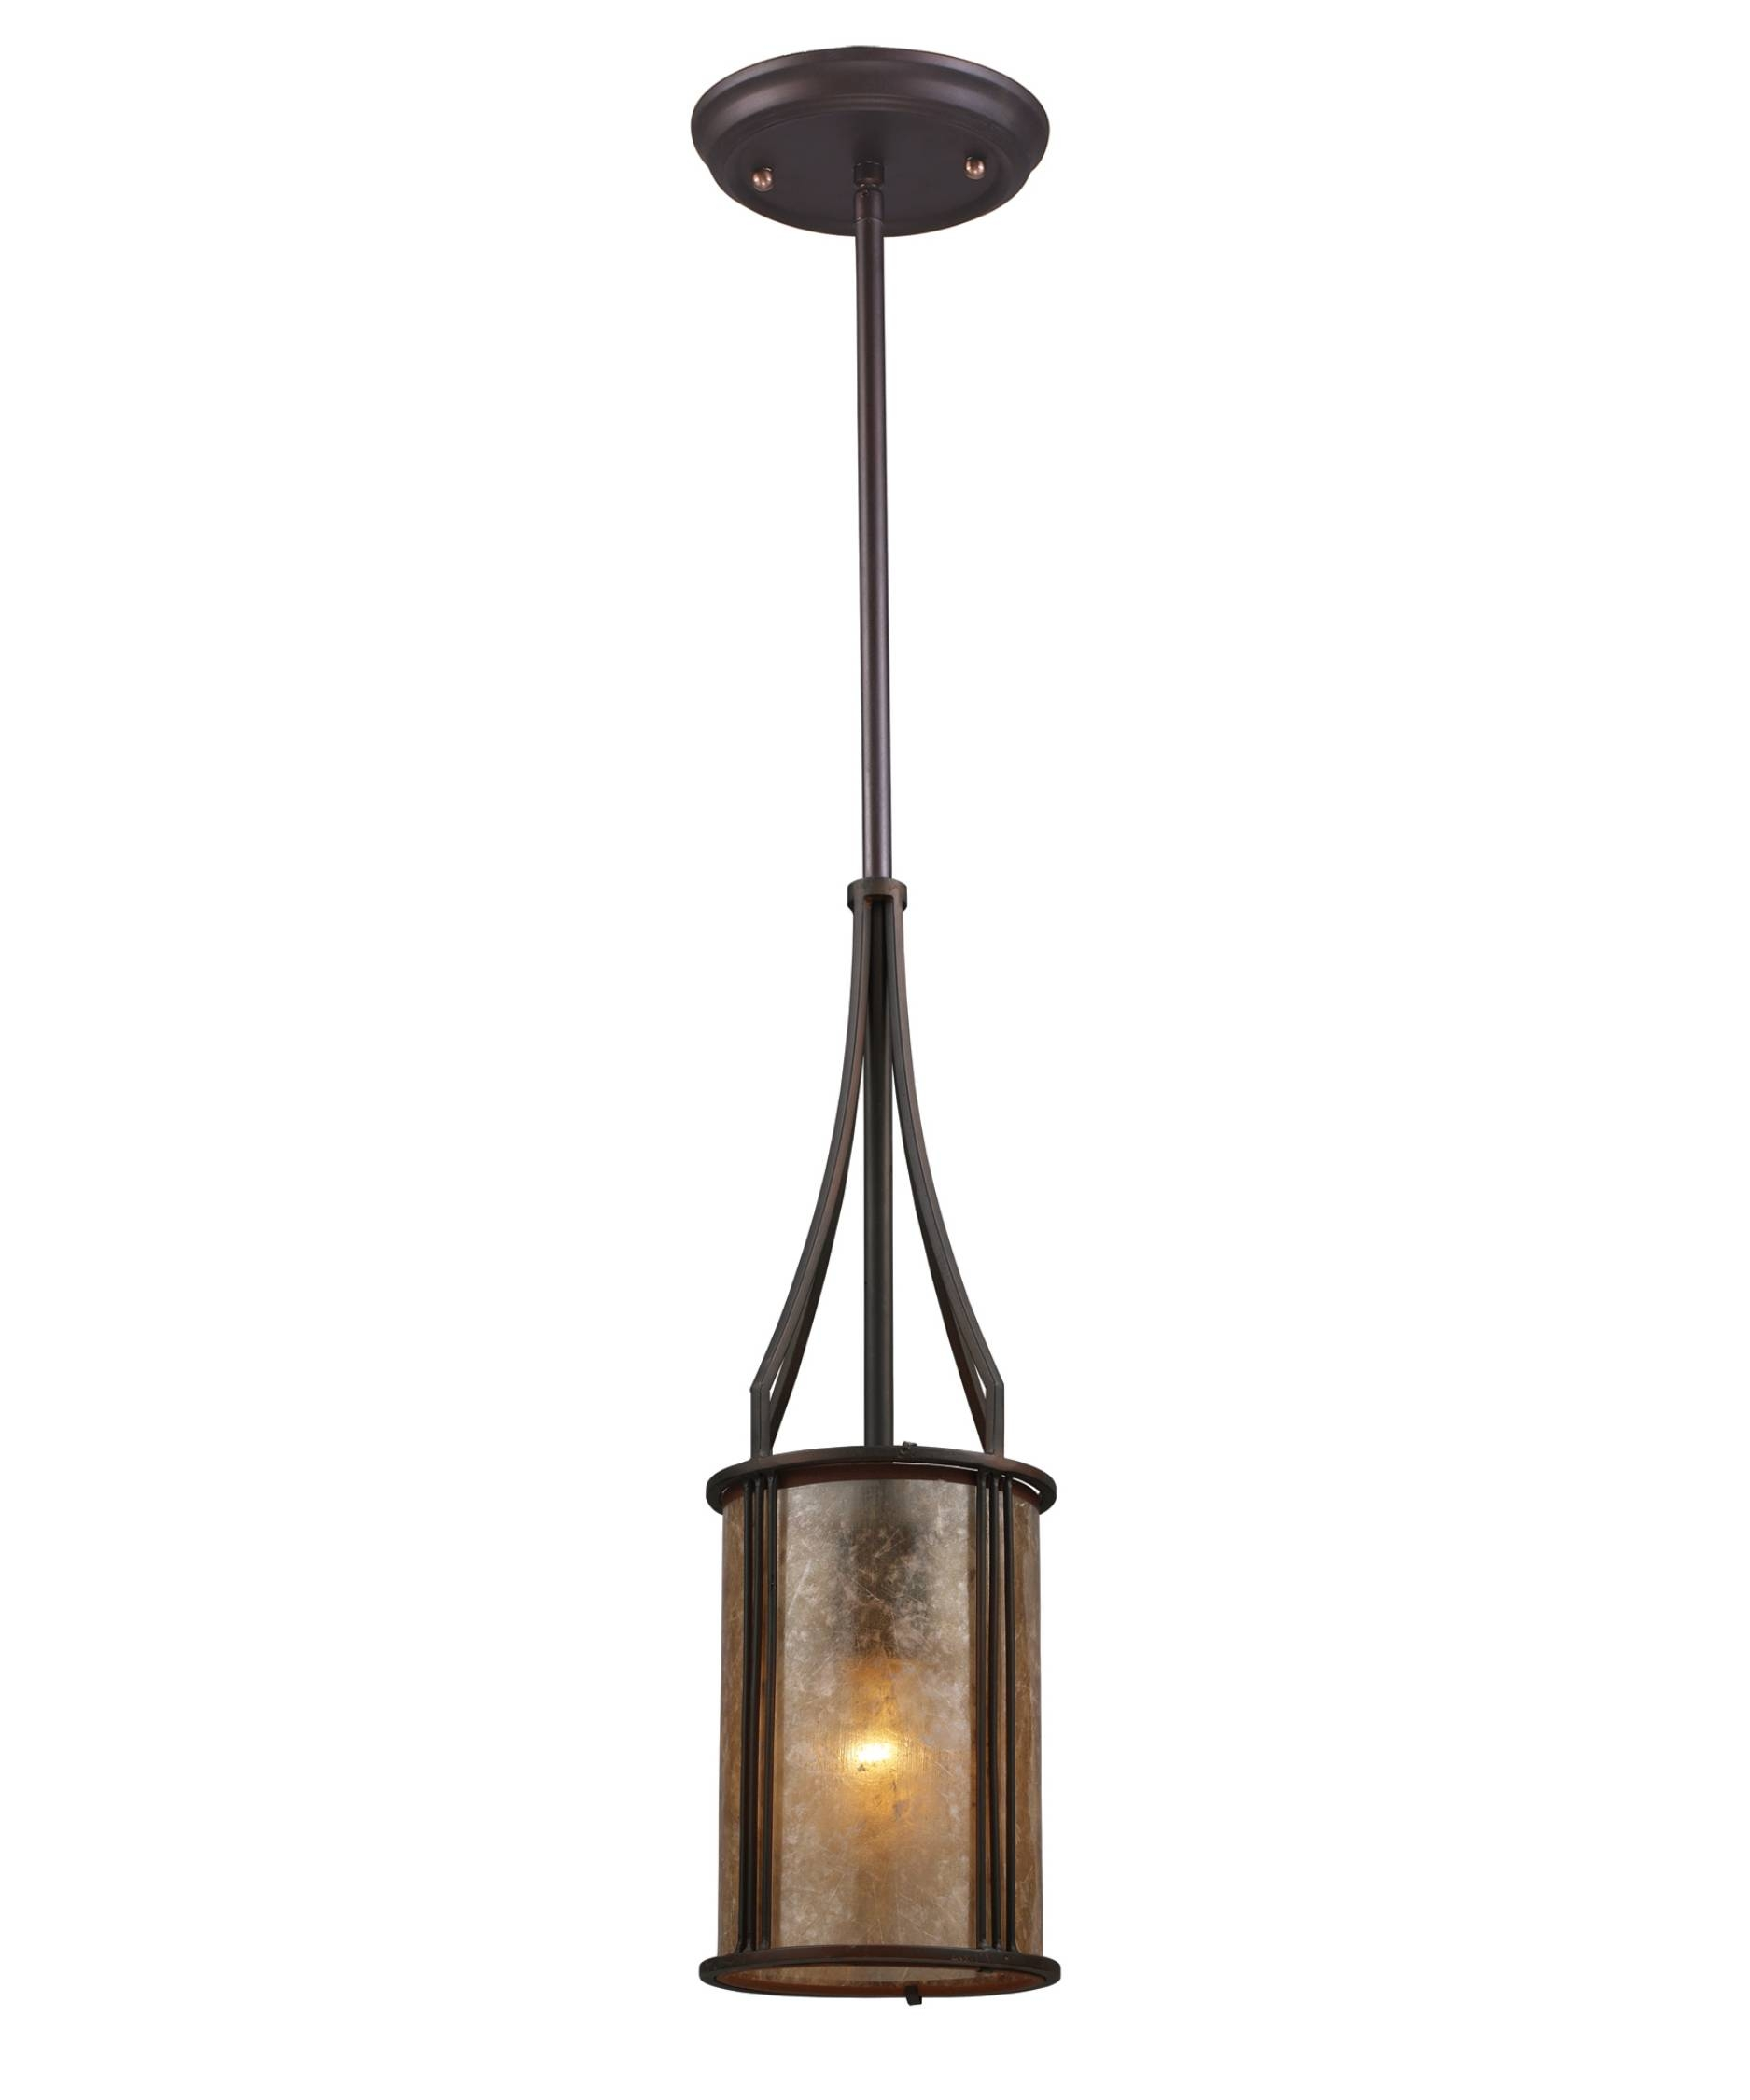 Mission Style Pendant Lights - Baby-Exit within Mission Pendant Light Fixtures (Image 7 of 15)